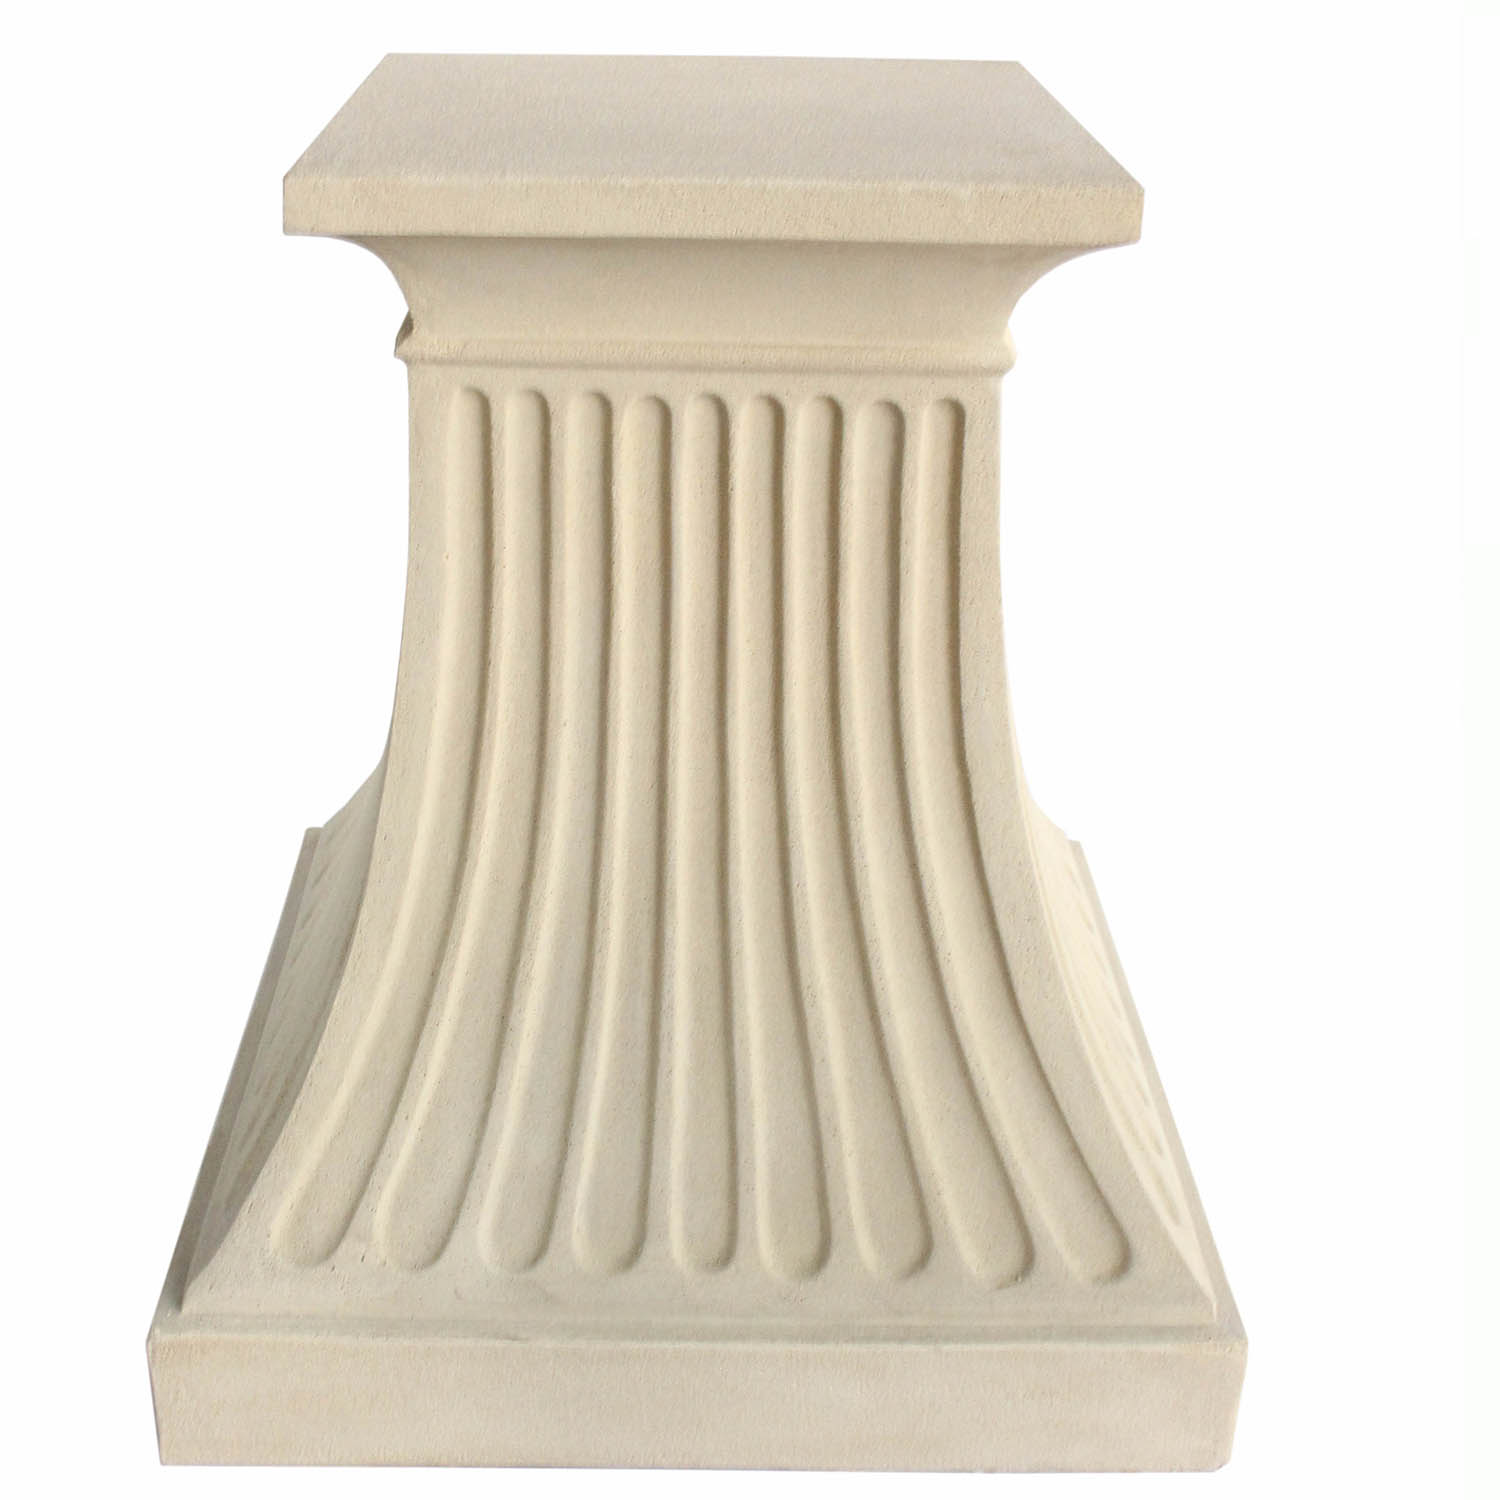 One of a kind Fluted Cast Limestone Pedestal Product Photo